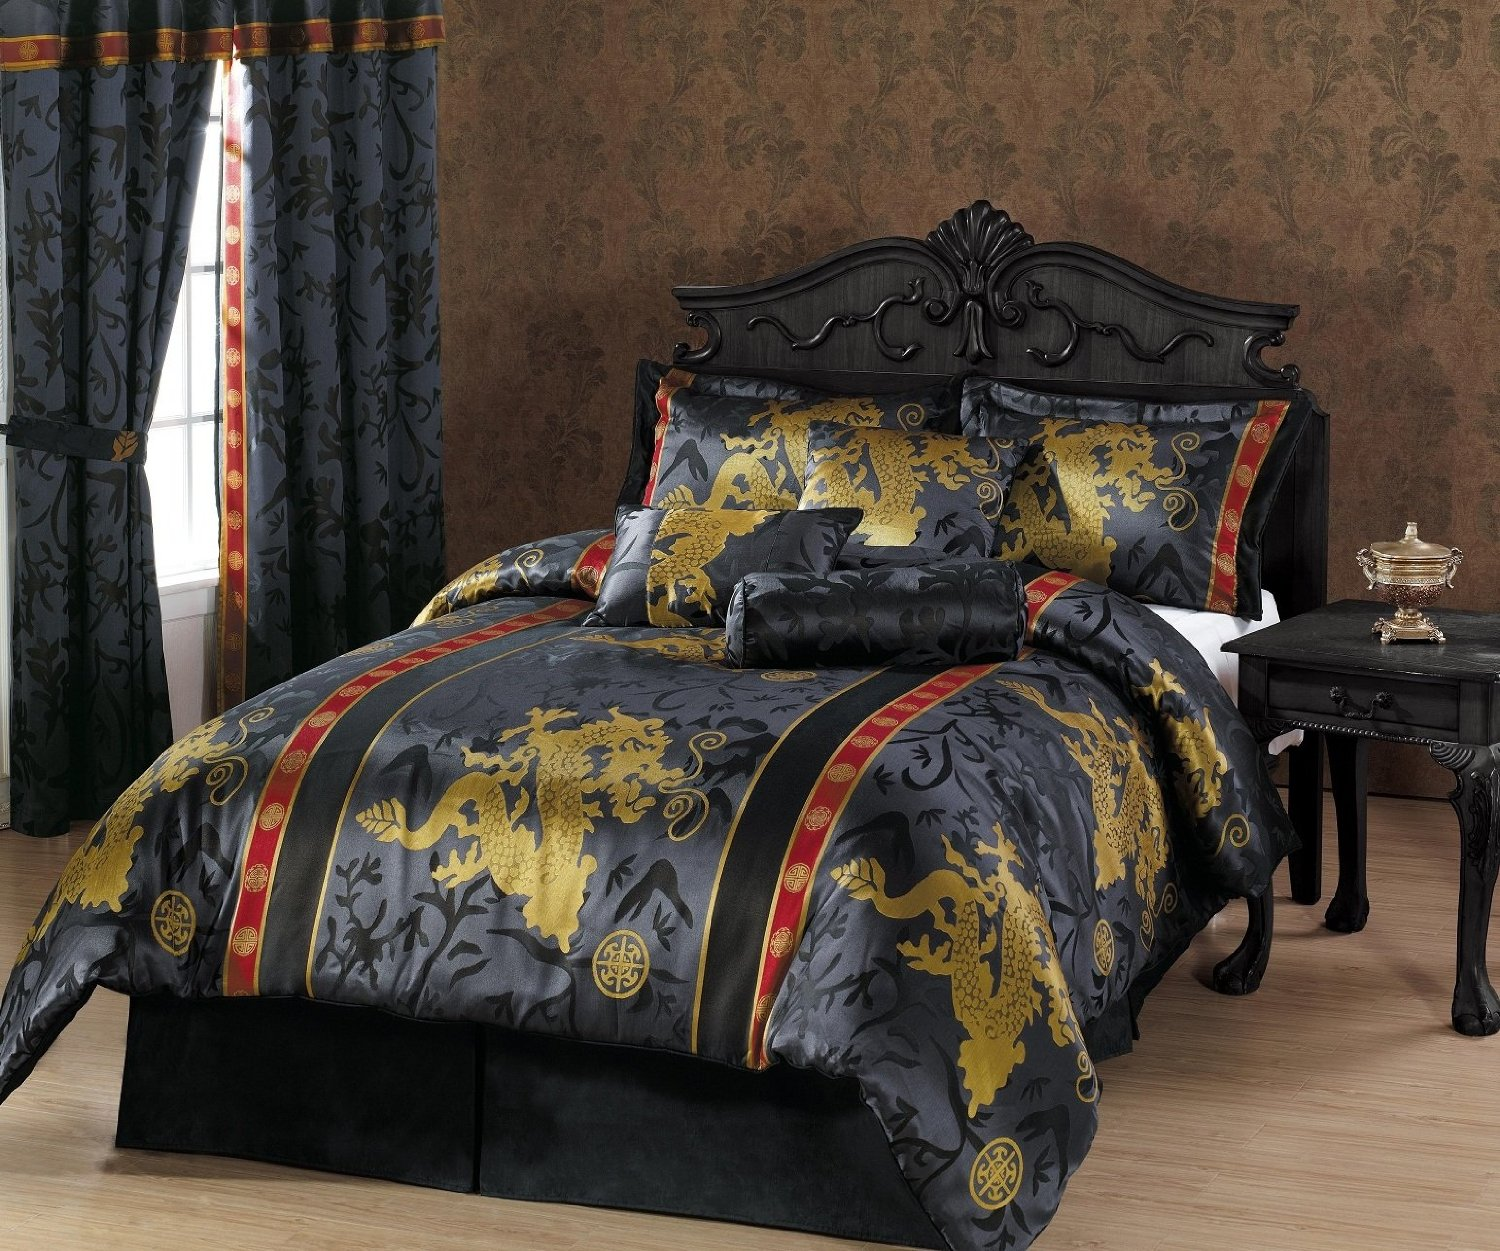 Get Quotations Chezmoi Collection 7 Piece Palace Dragon Jacquard Comforter Set King Black Gold